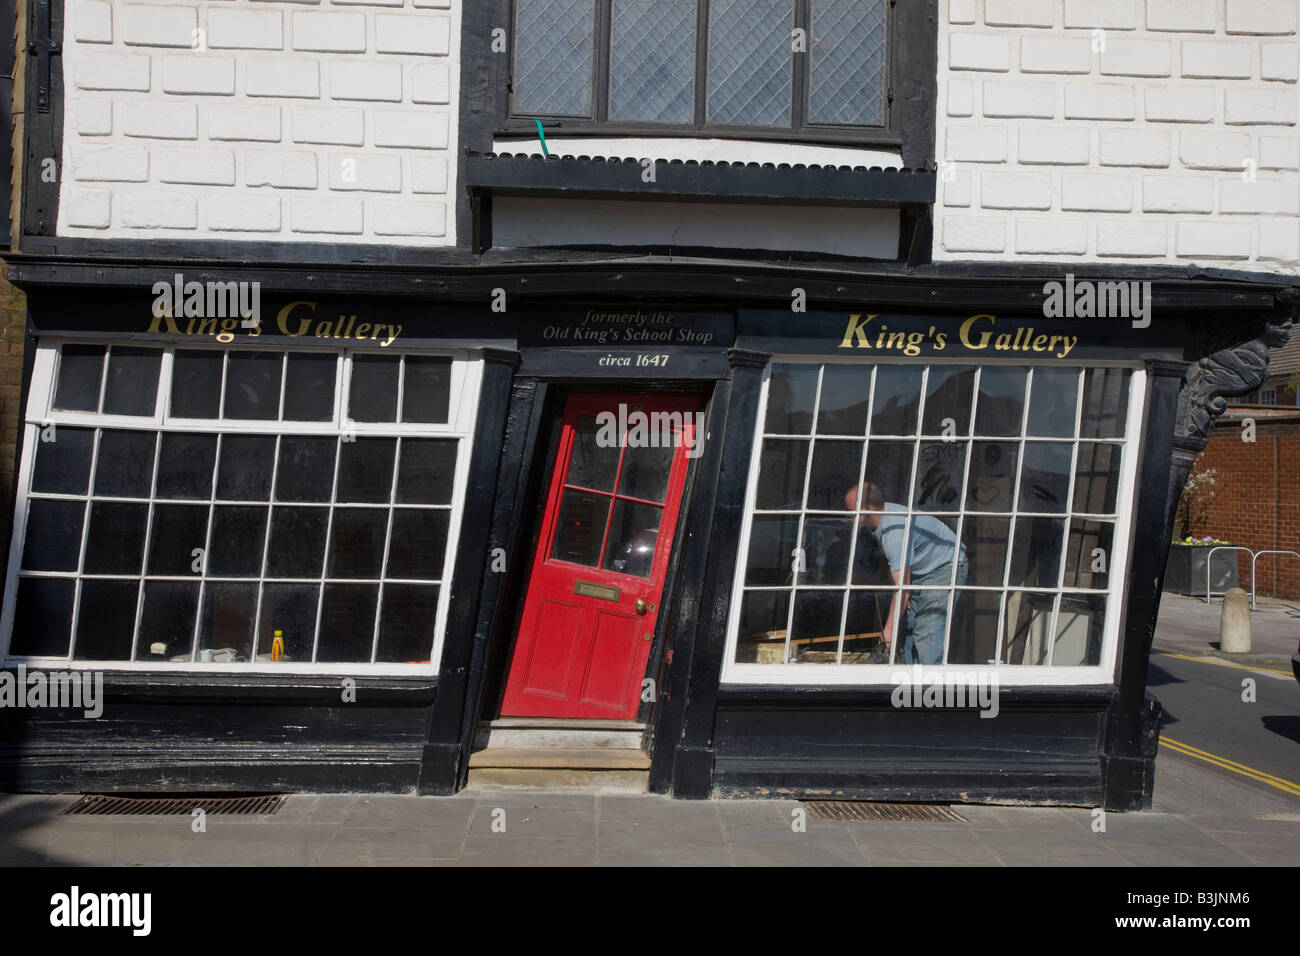 Old shop with crooked front door and windows & Old shop with crooked front door and windows Stock Photo: 19466502 ...